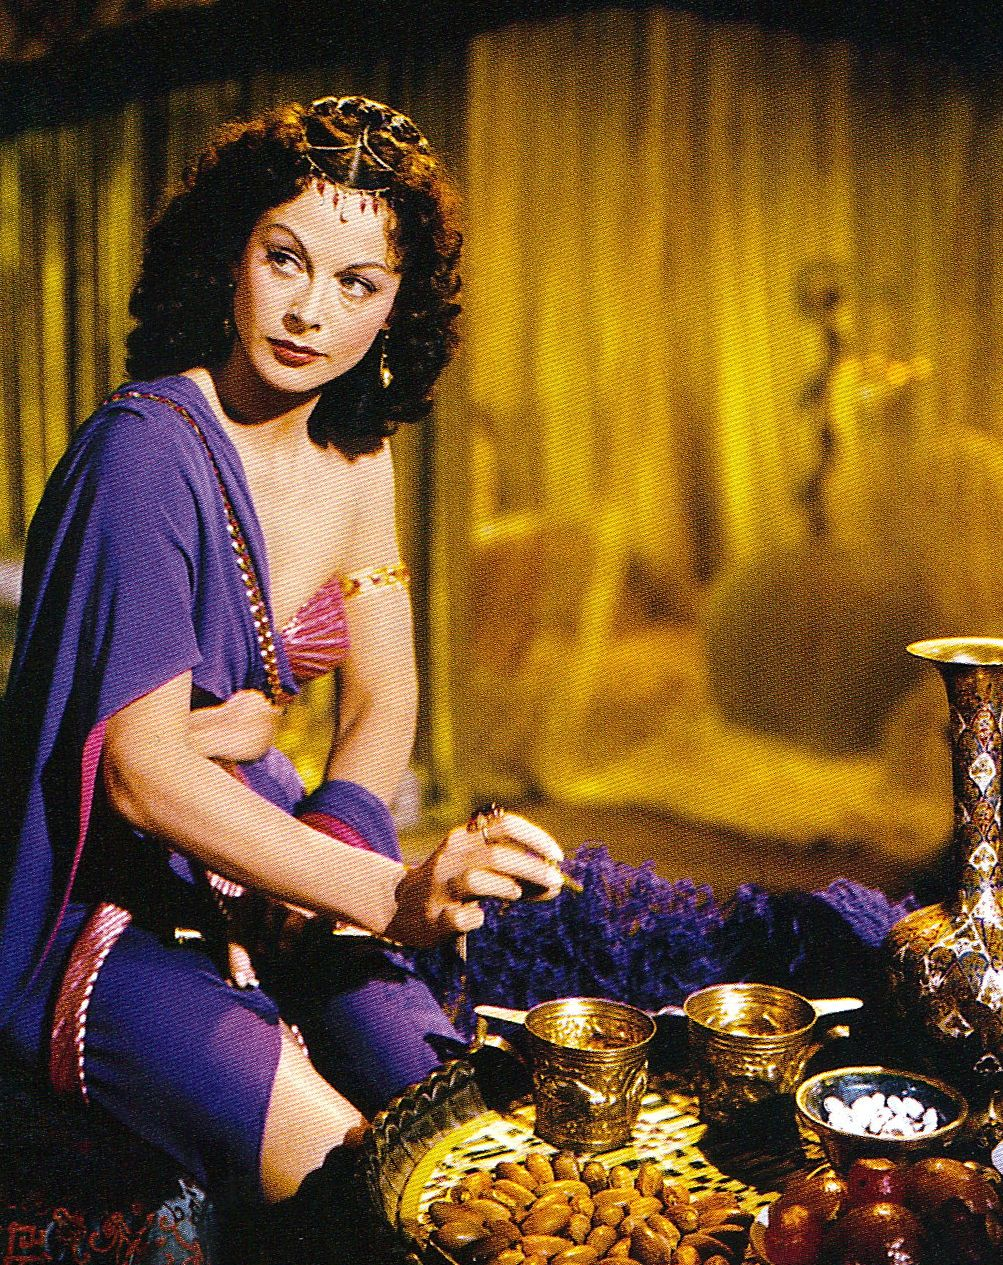 hedy lamarr in samson and delilah 1950 amazing clothes